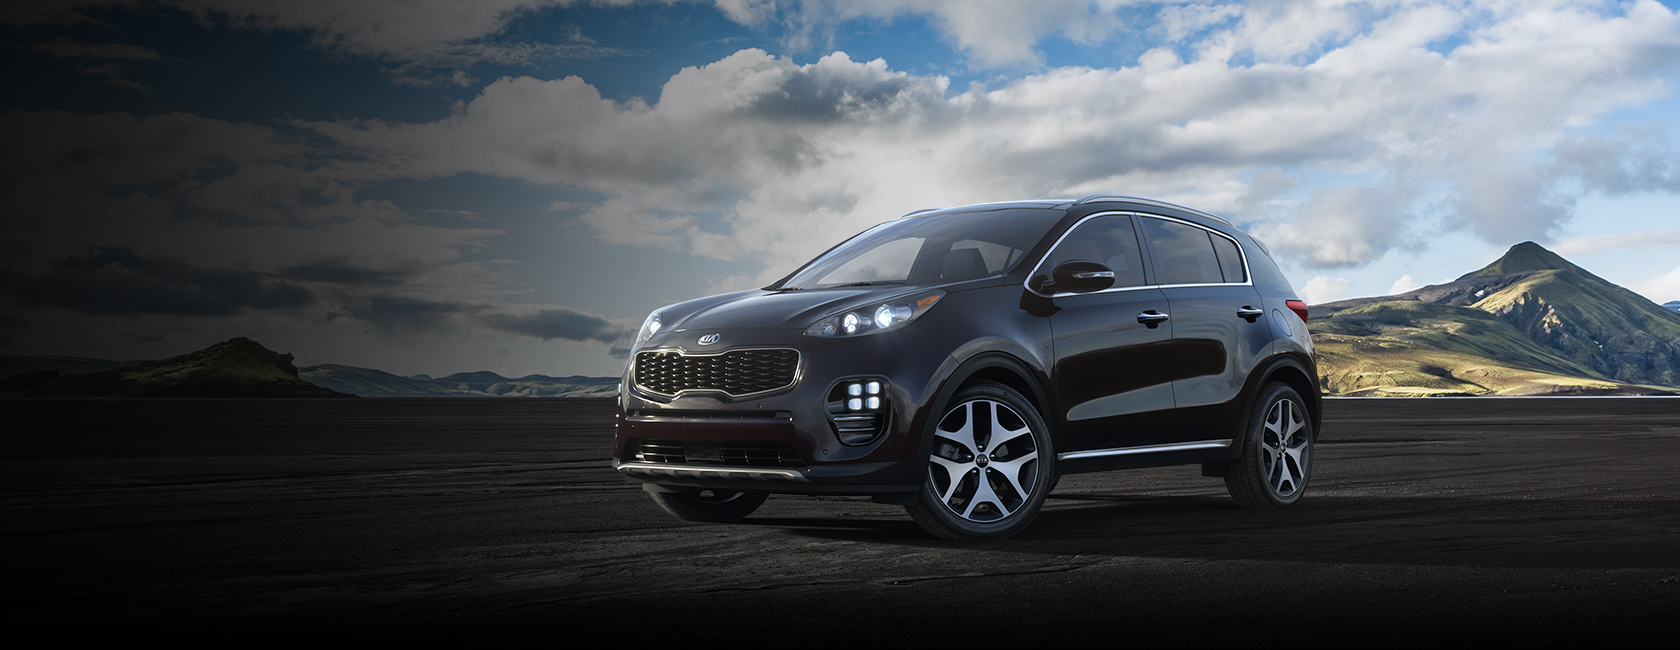 2019 Kia Sportage Exterior Paint Color Options